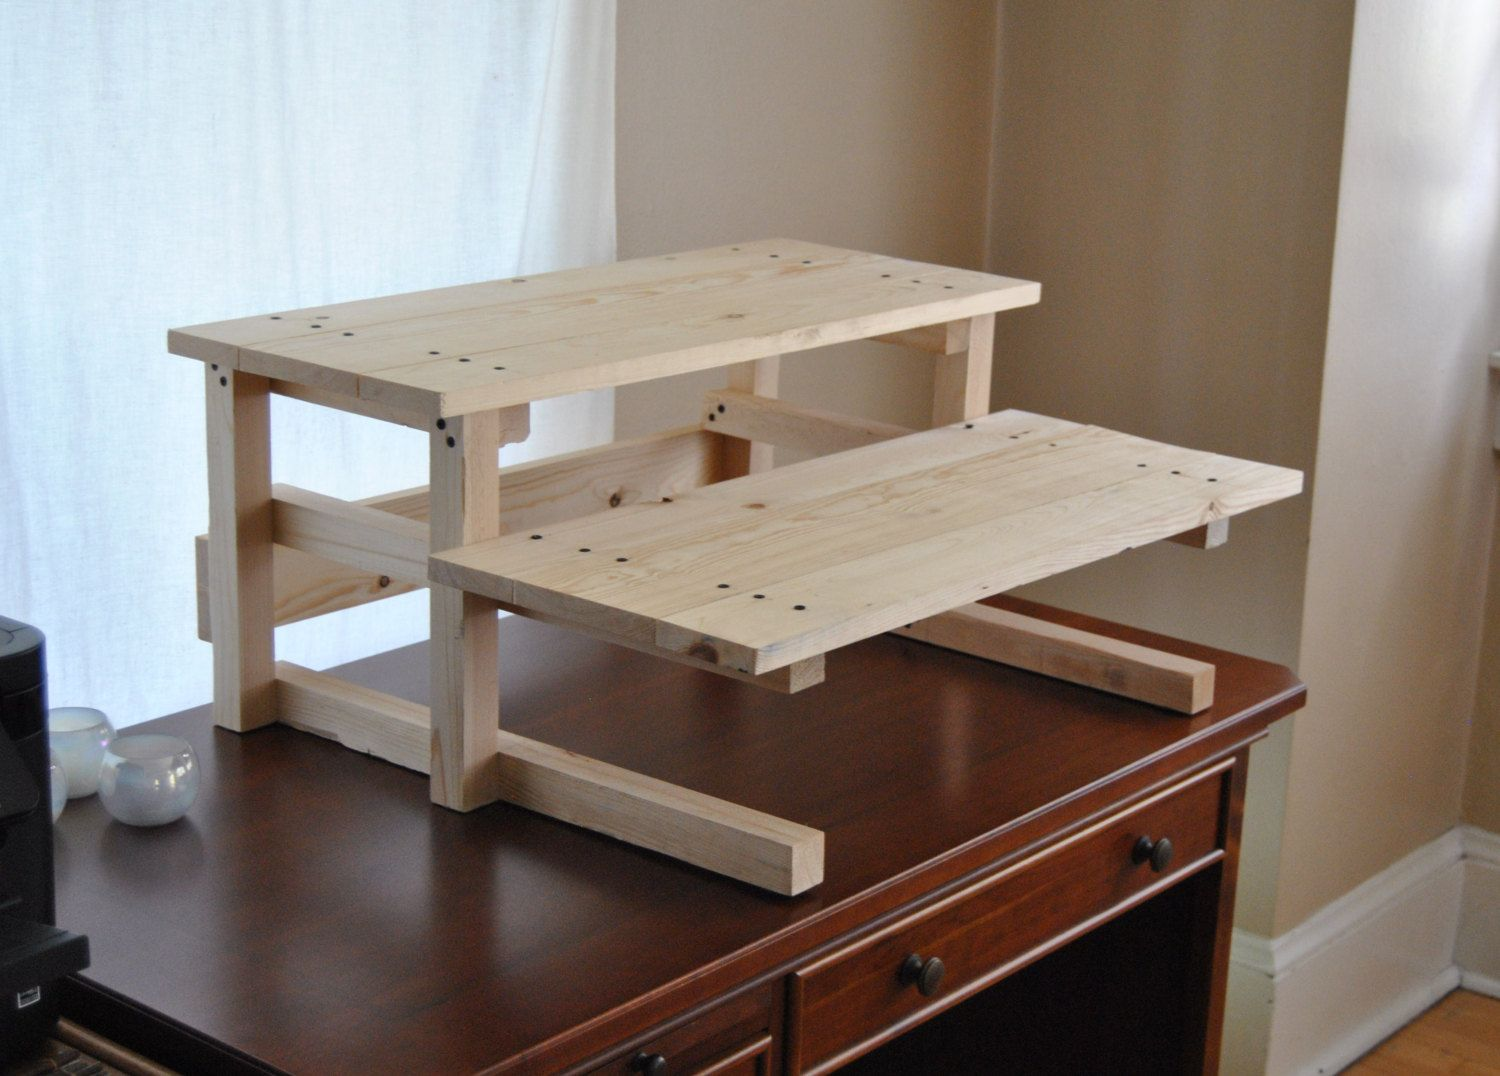 Diy Project Plan Two Monitor Standing Computer Desk Diy Project Plan Diy Standing Desk Diy Desk Plans Diy Projects Plans